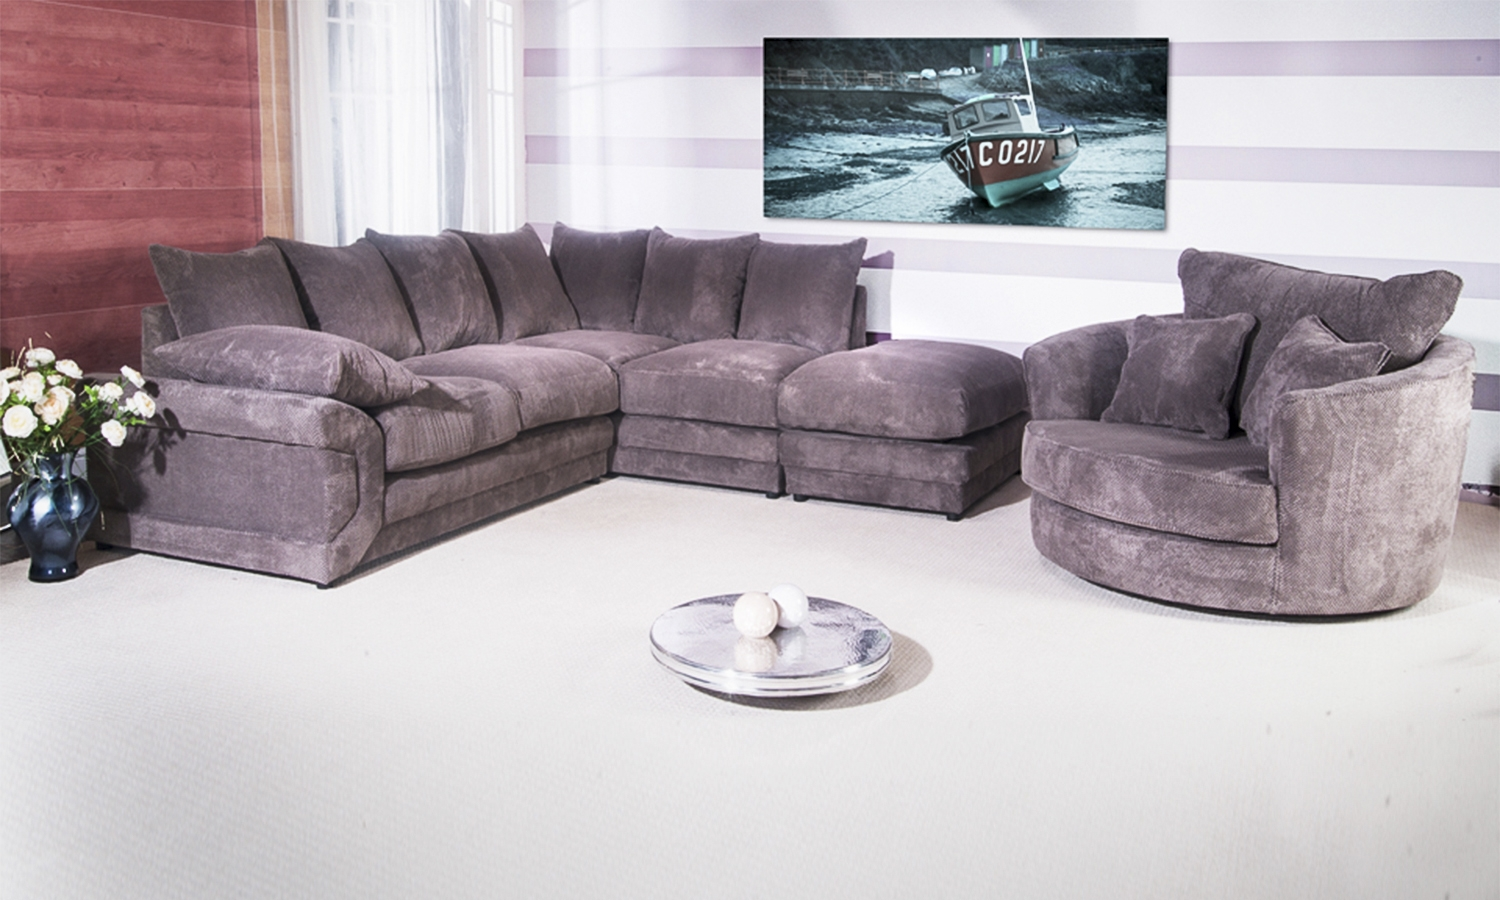 Corner Sofa With Swivel Chair Best Selling Ur7 Umpsa 78 Sofas With Sofa With Swivel Chair (View 12 of 15)